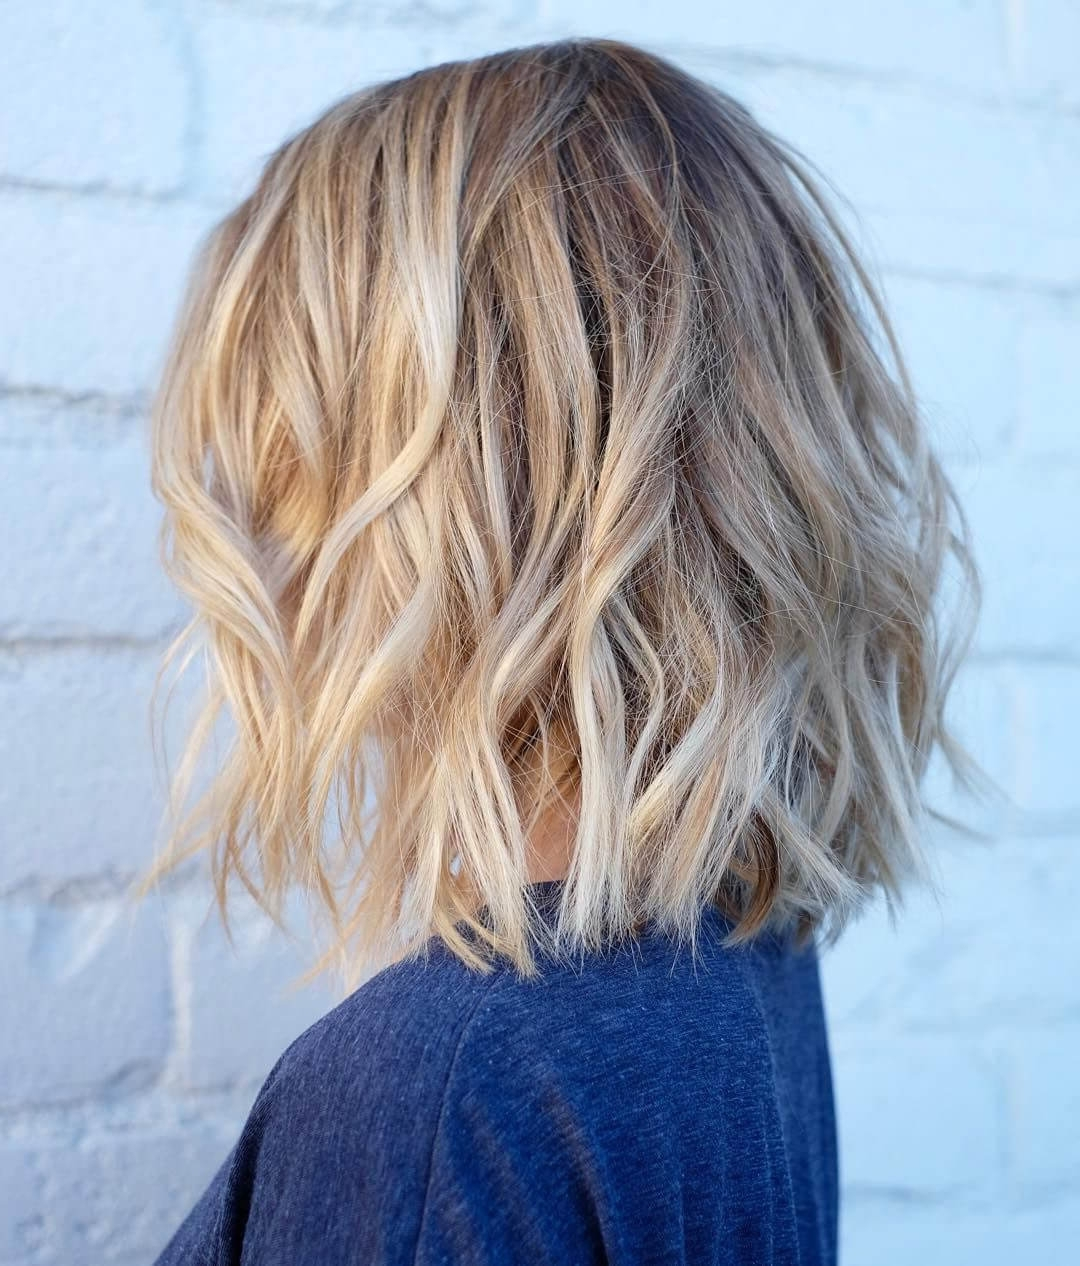 50 Fresh Short Blonde Hair Ideas To Update Your Style In 2018 Intended For Newest Honey Blonde Hairstyles (View 5 of 20)